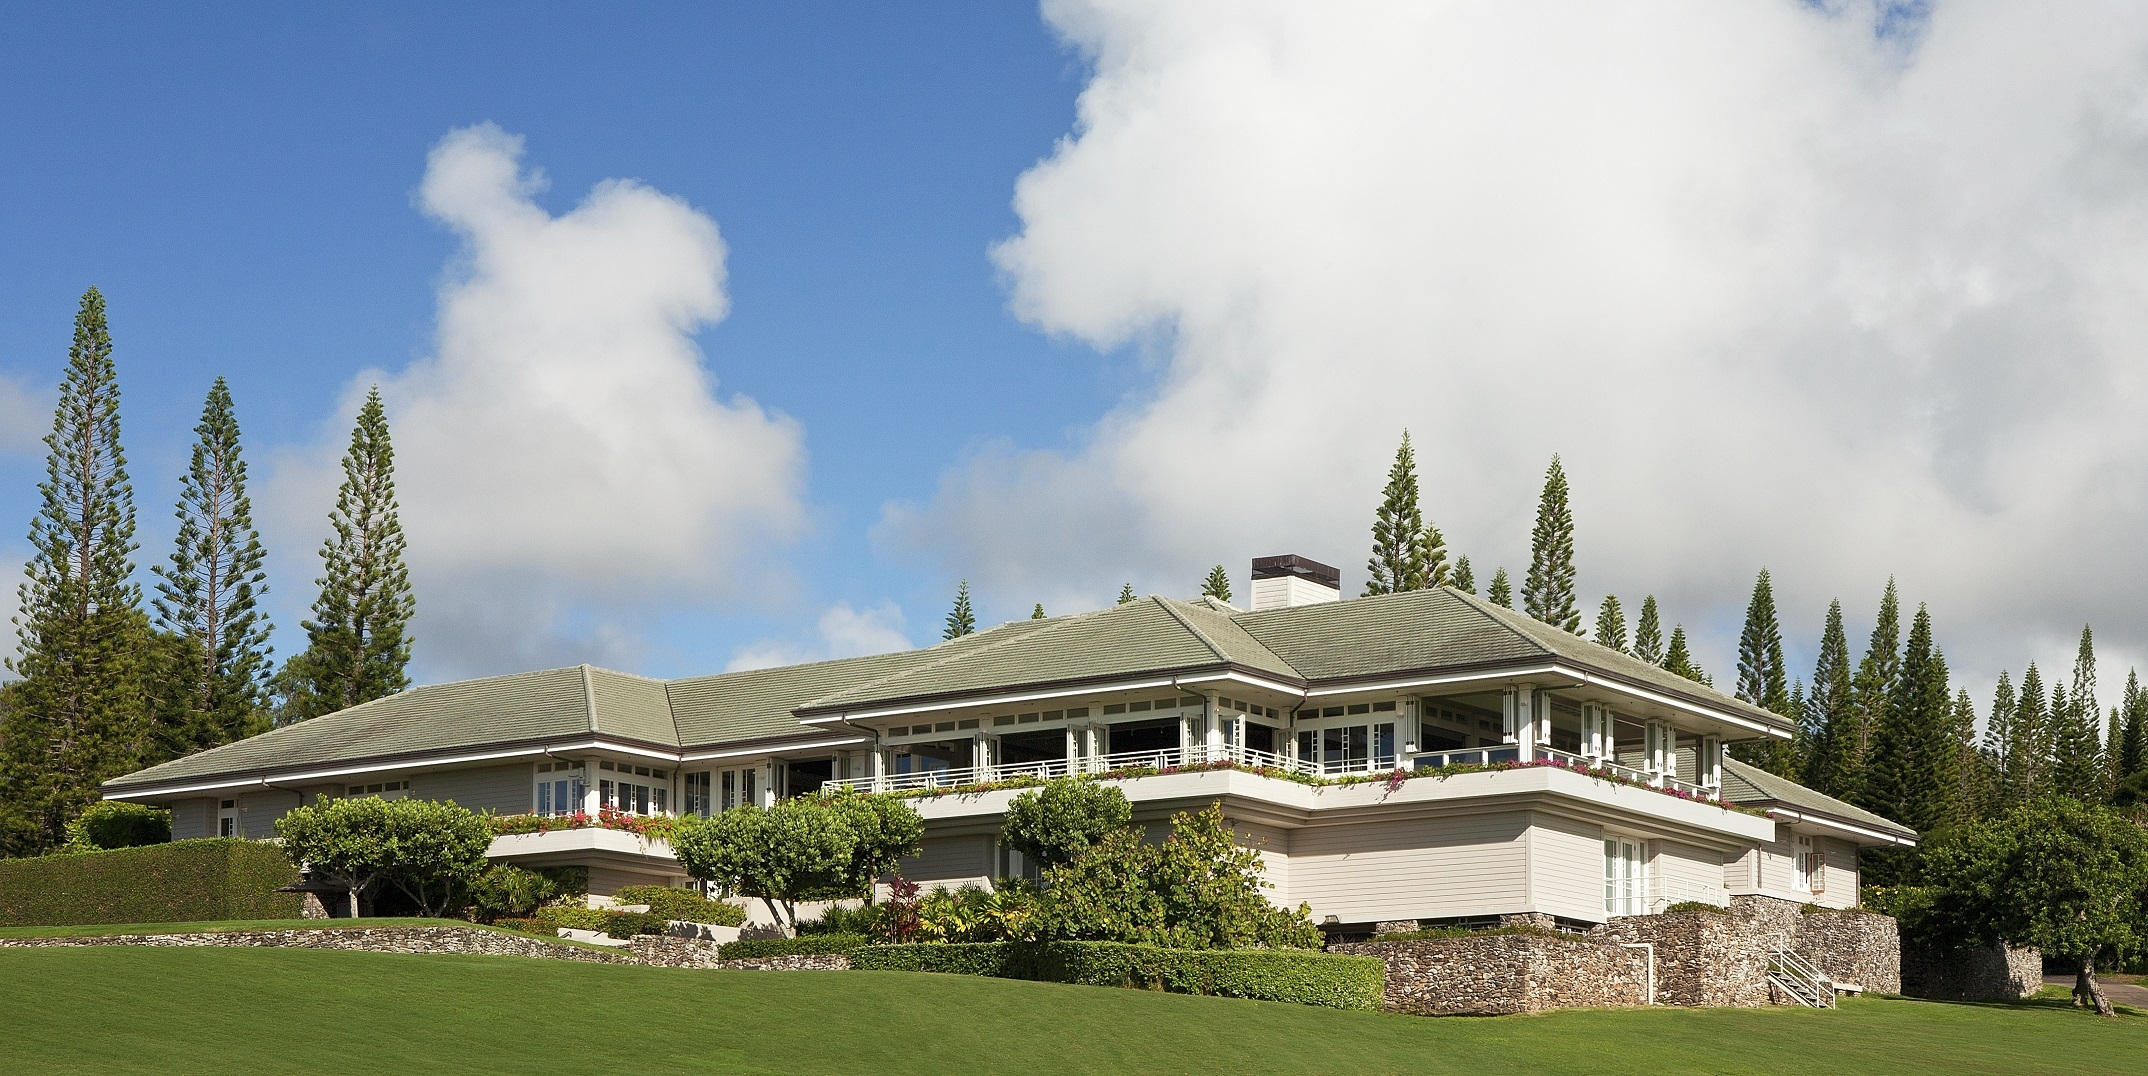 Kapalua Golf's Plantation Course Golf Shop Undergoing Renovation